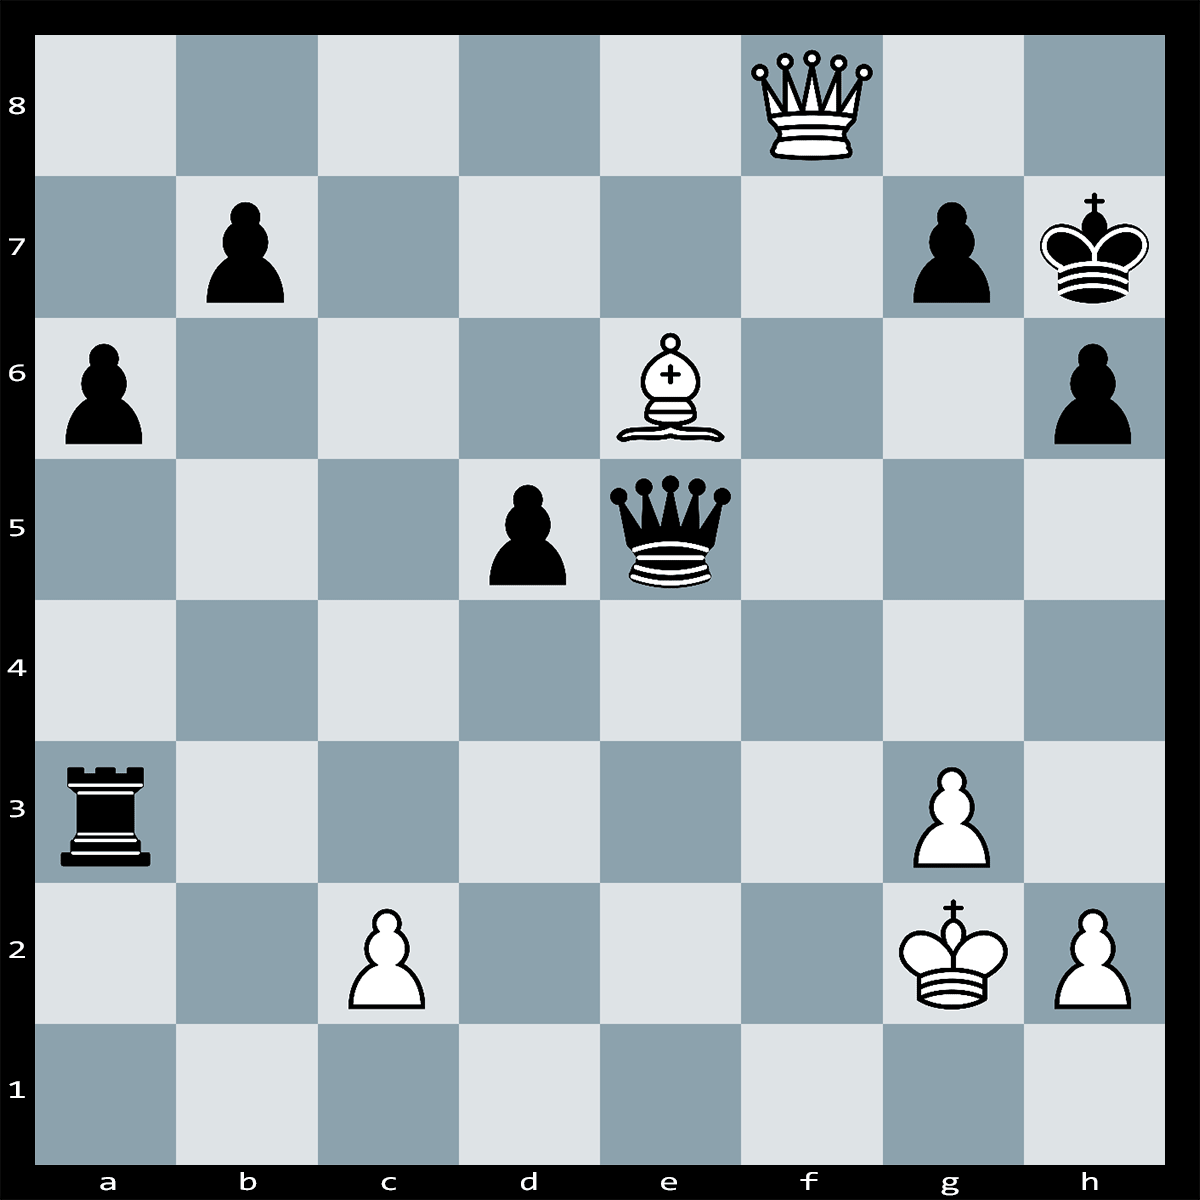 Chess Puzzle #313 | White to Move, Can you find the winning combination to this puzzle? Checkmate in 5 Moves